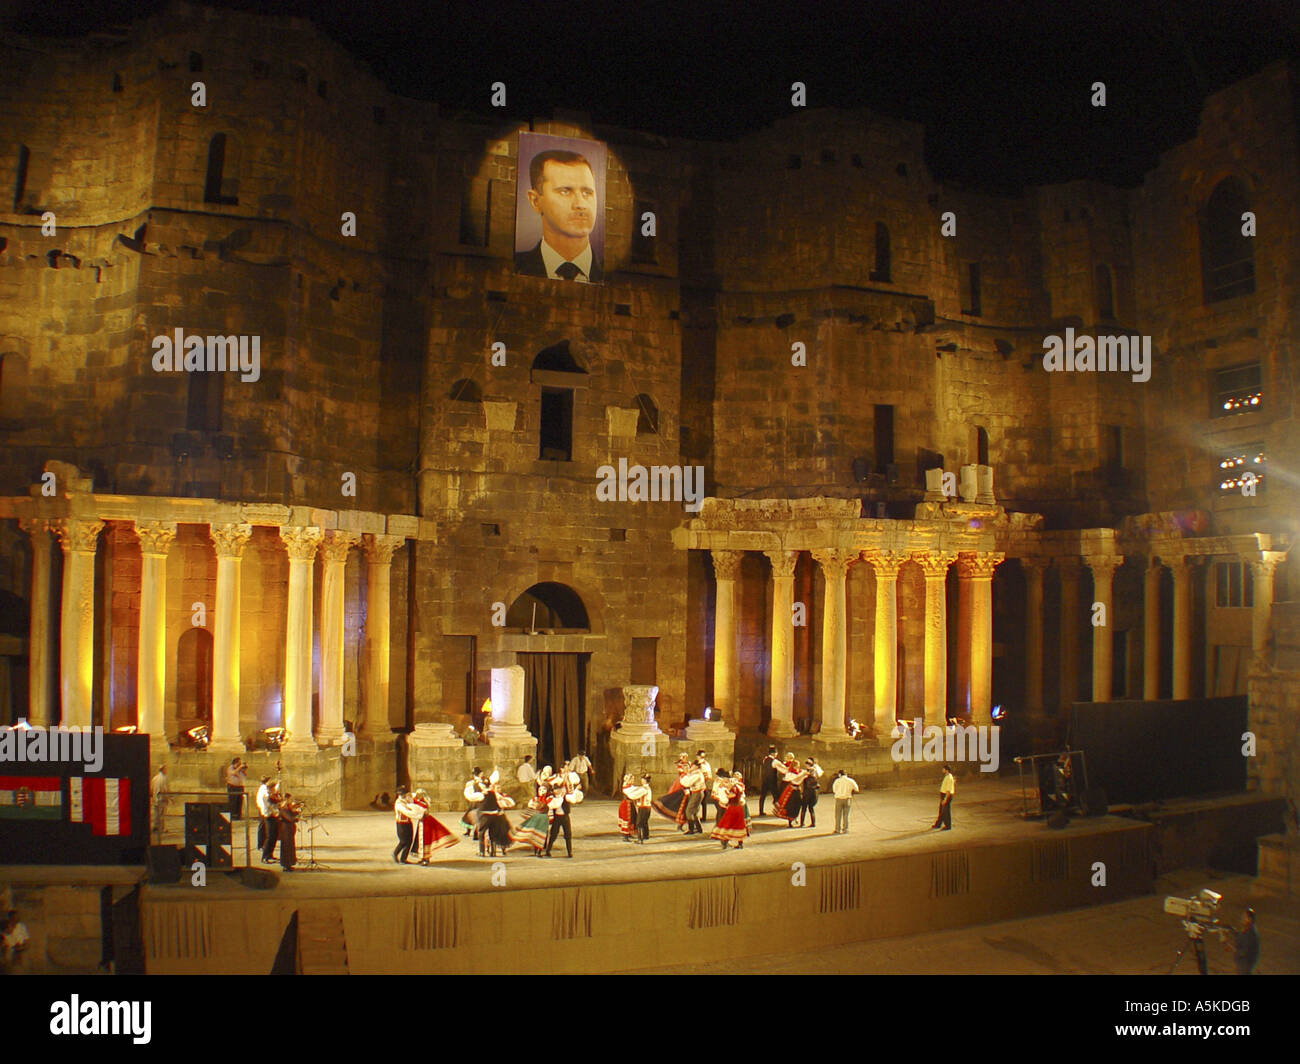 Performance in the roman theatre in Bosra - Stock Image